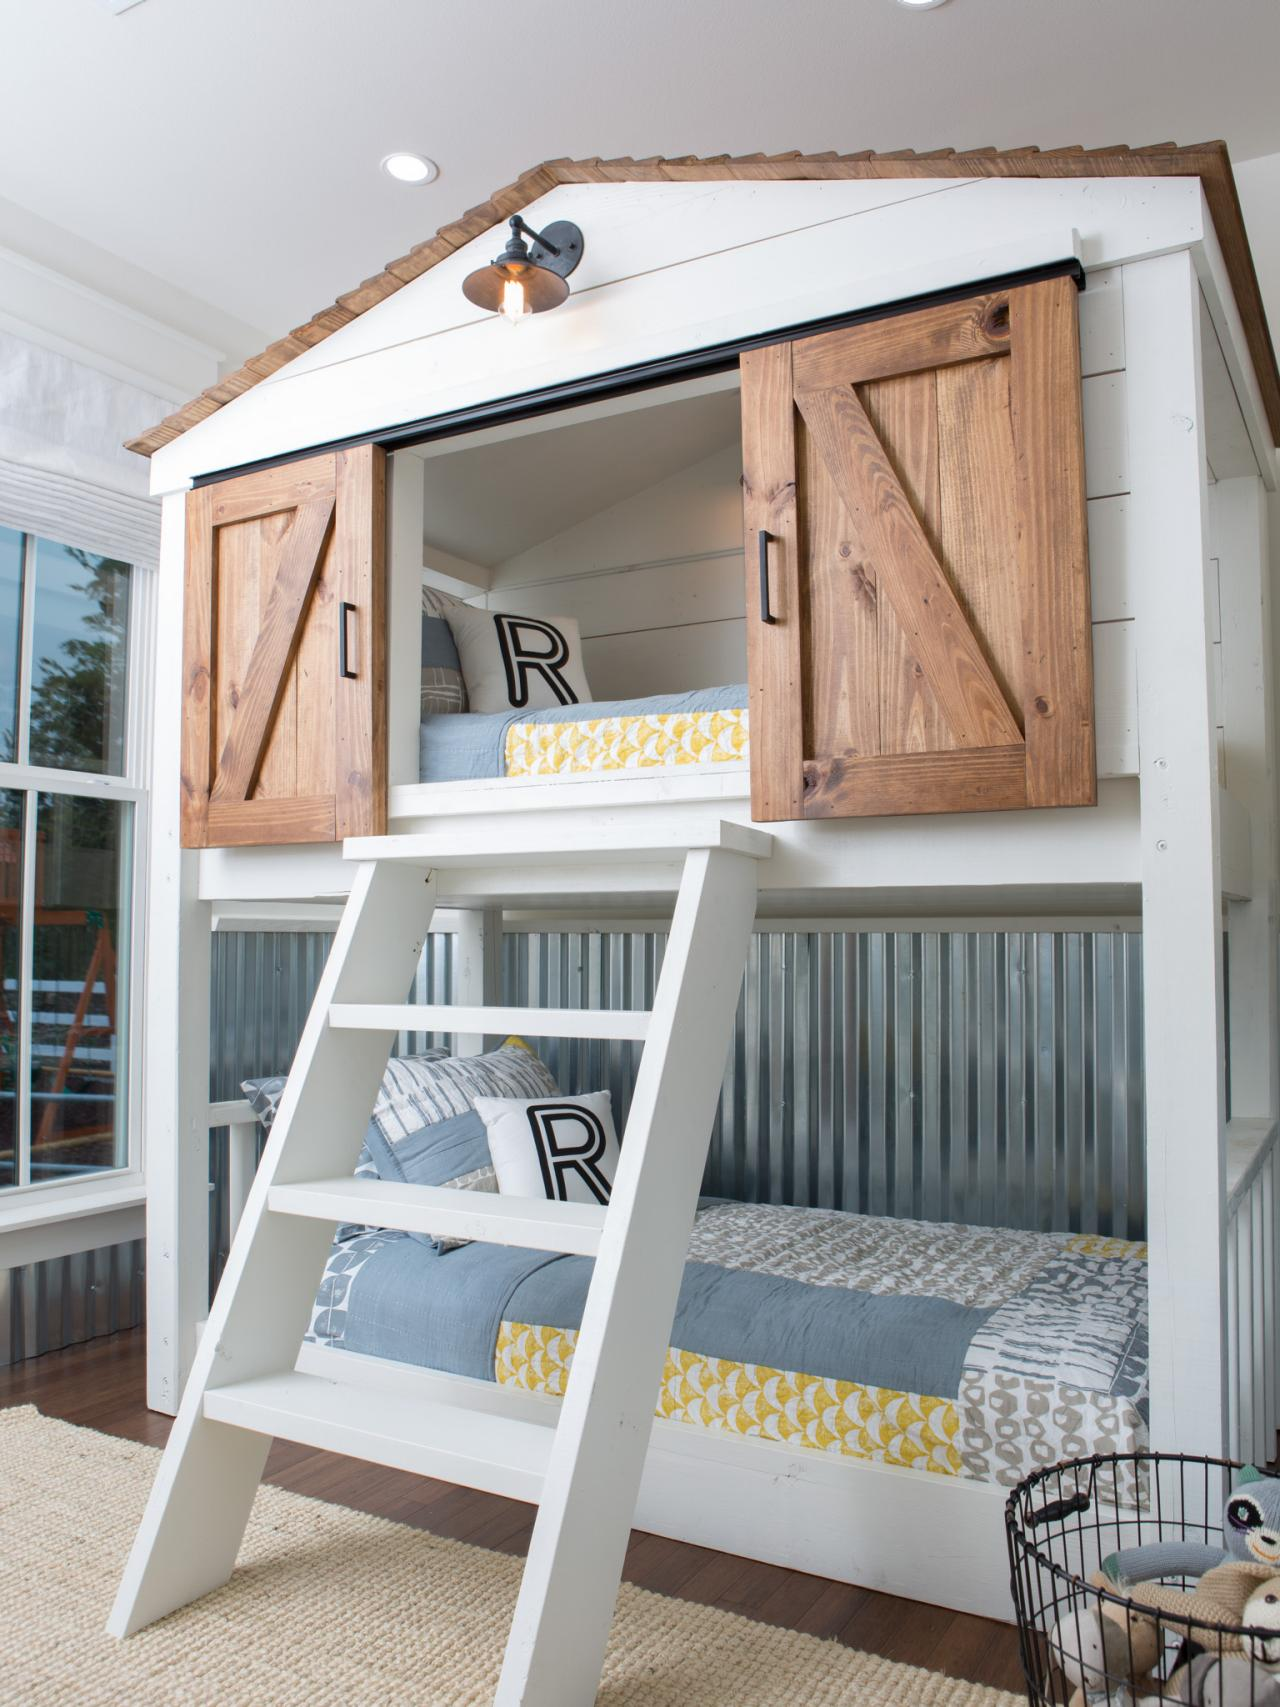 Photos hgtv 39 s fixer upper with chip and joanna gaines hgtv Bunk bed boys room